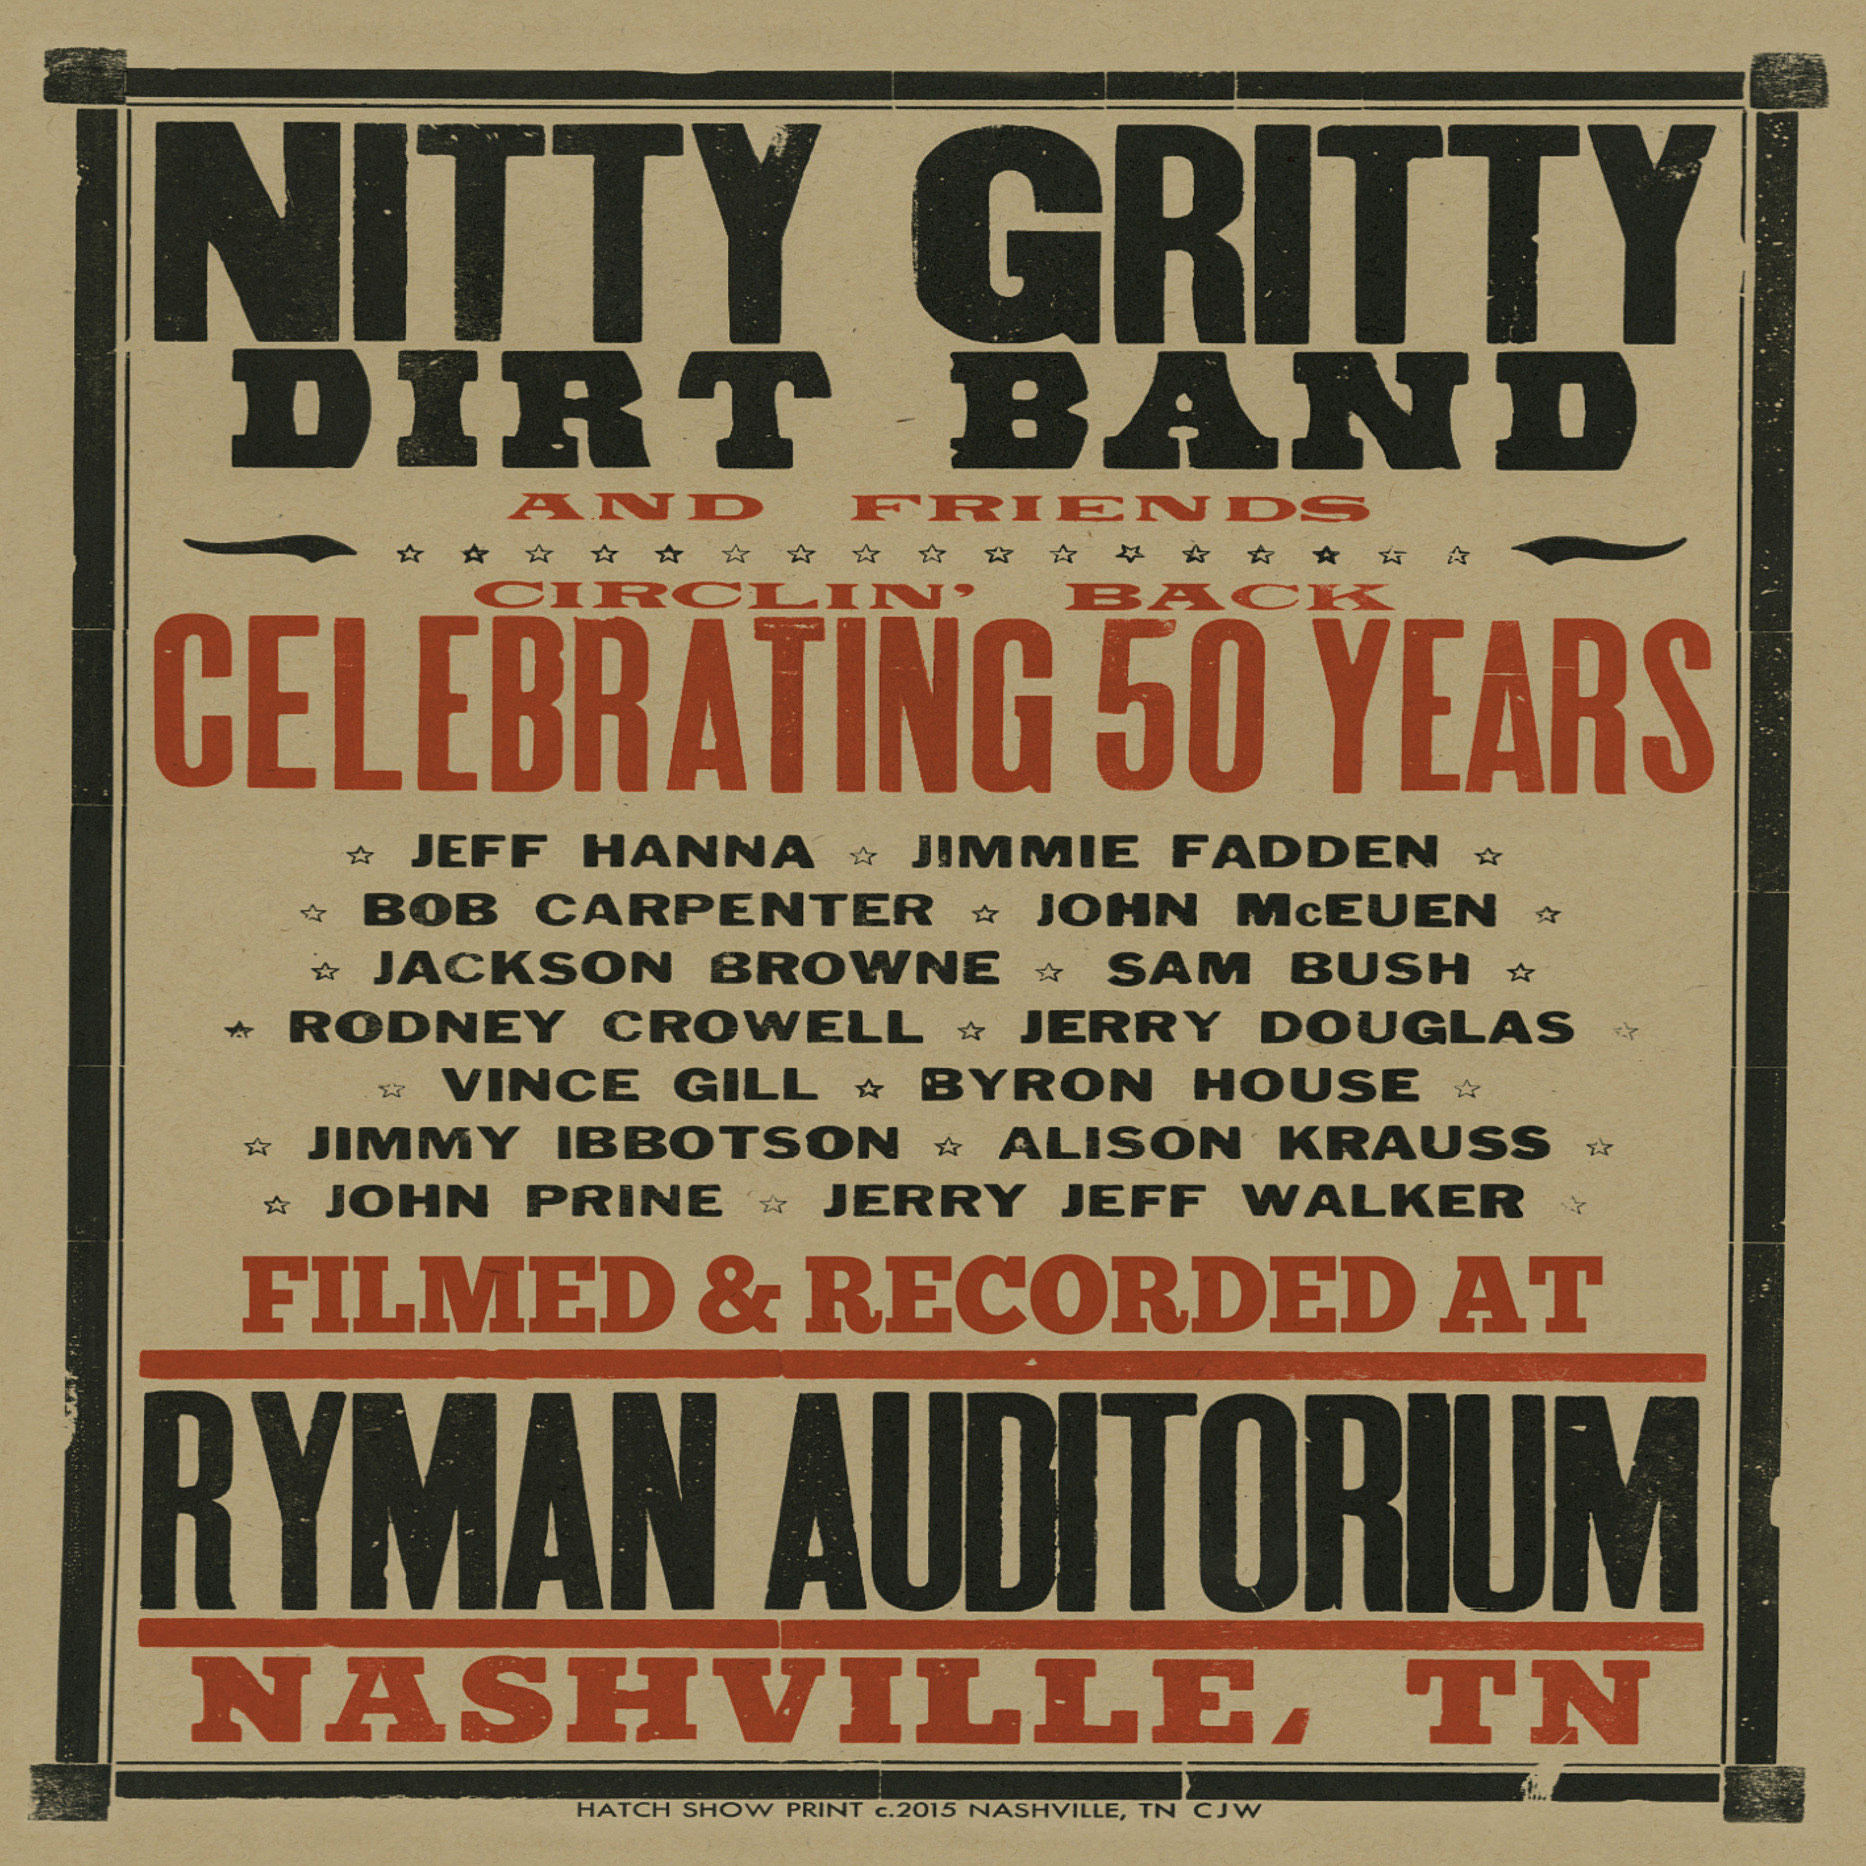 Nitty Gritty Dirt Band Still Putting Out New Albums